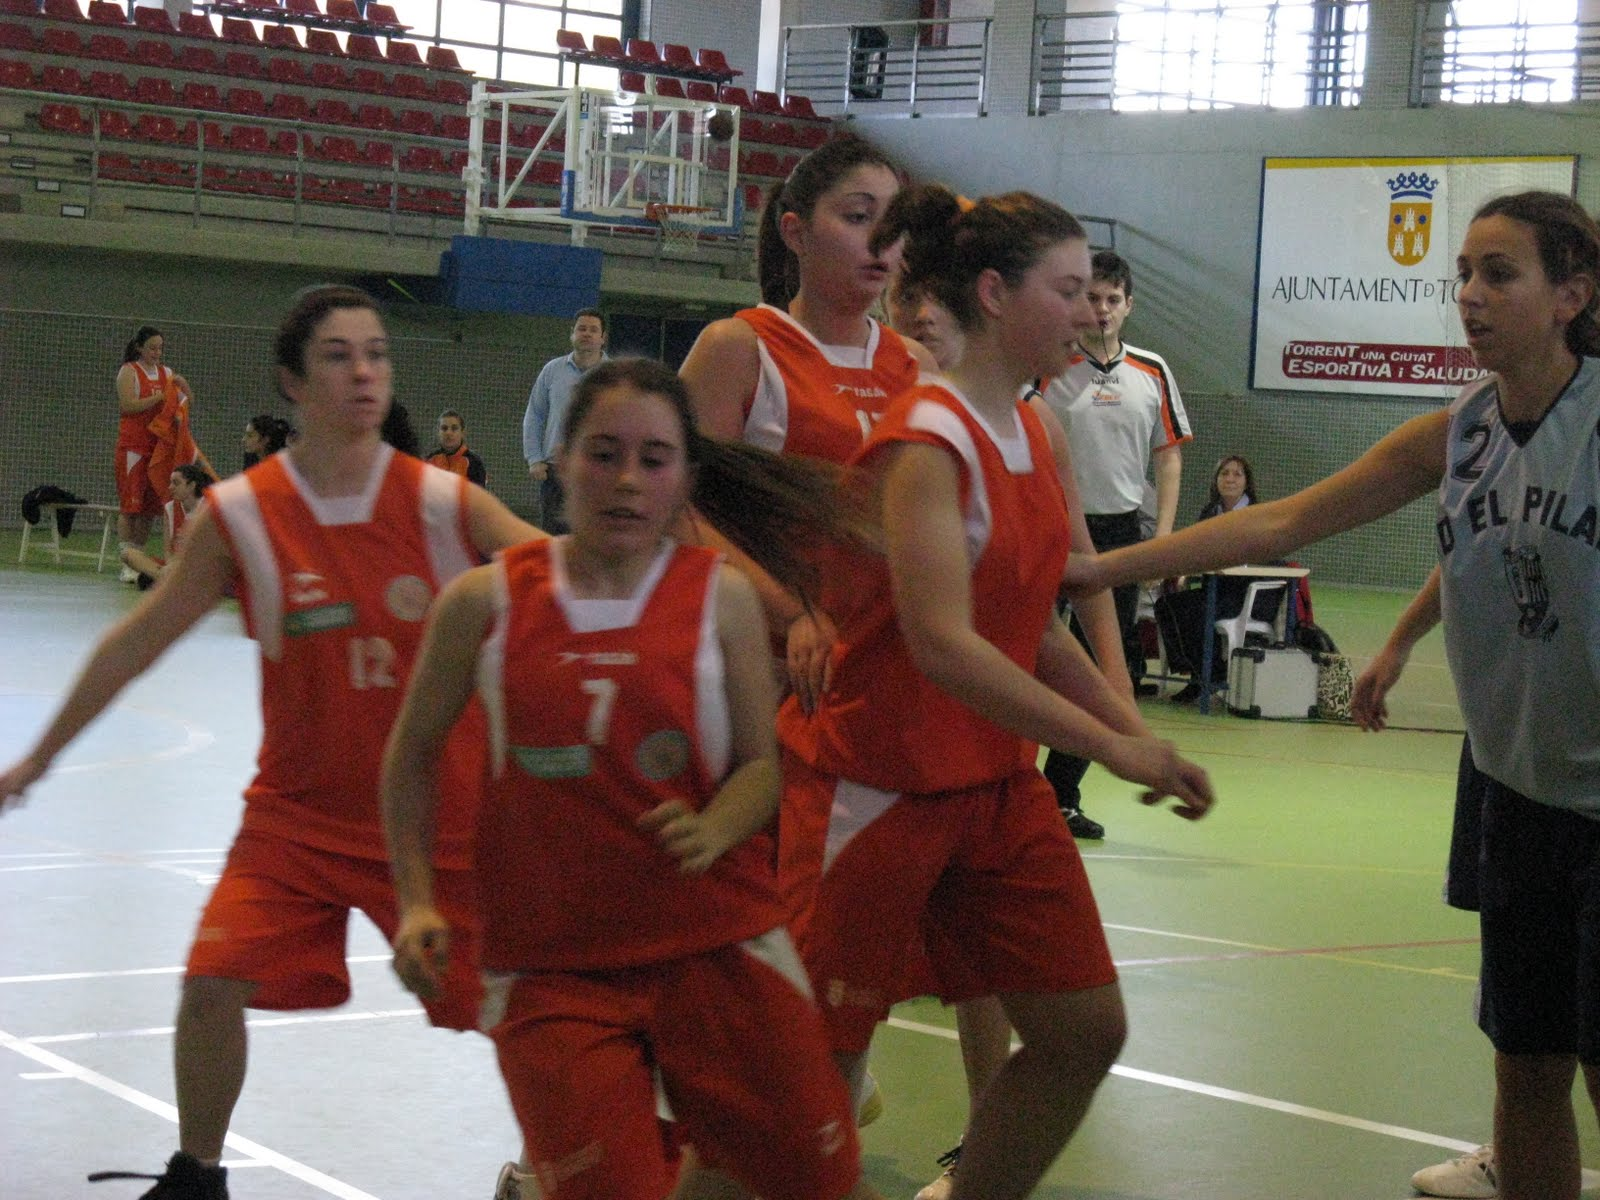 UBF Torrent: Resultados Jornada 13/02/11